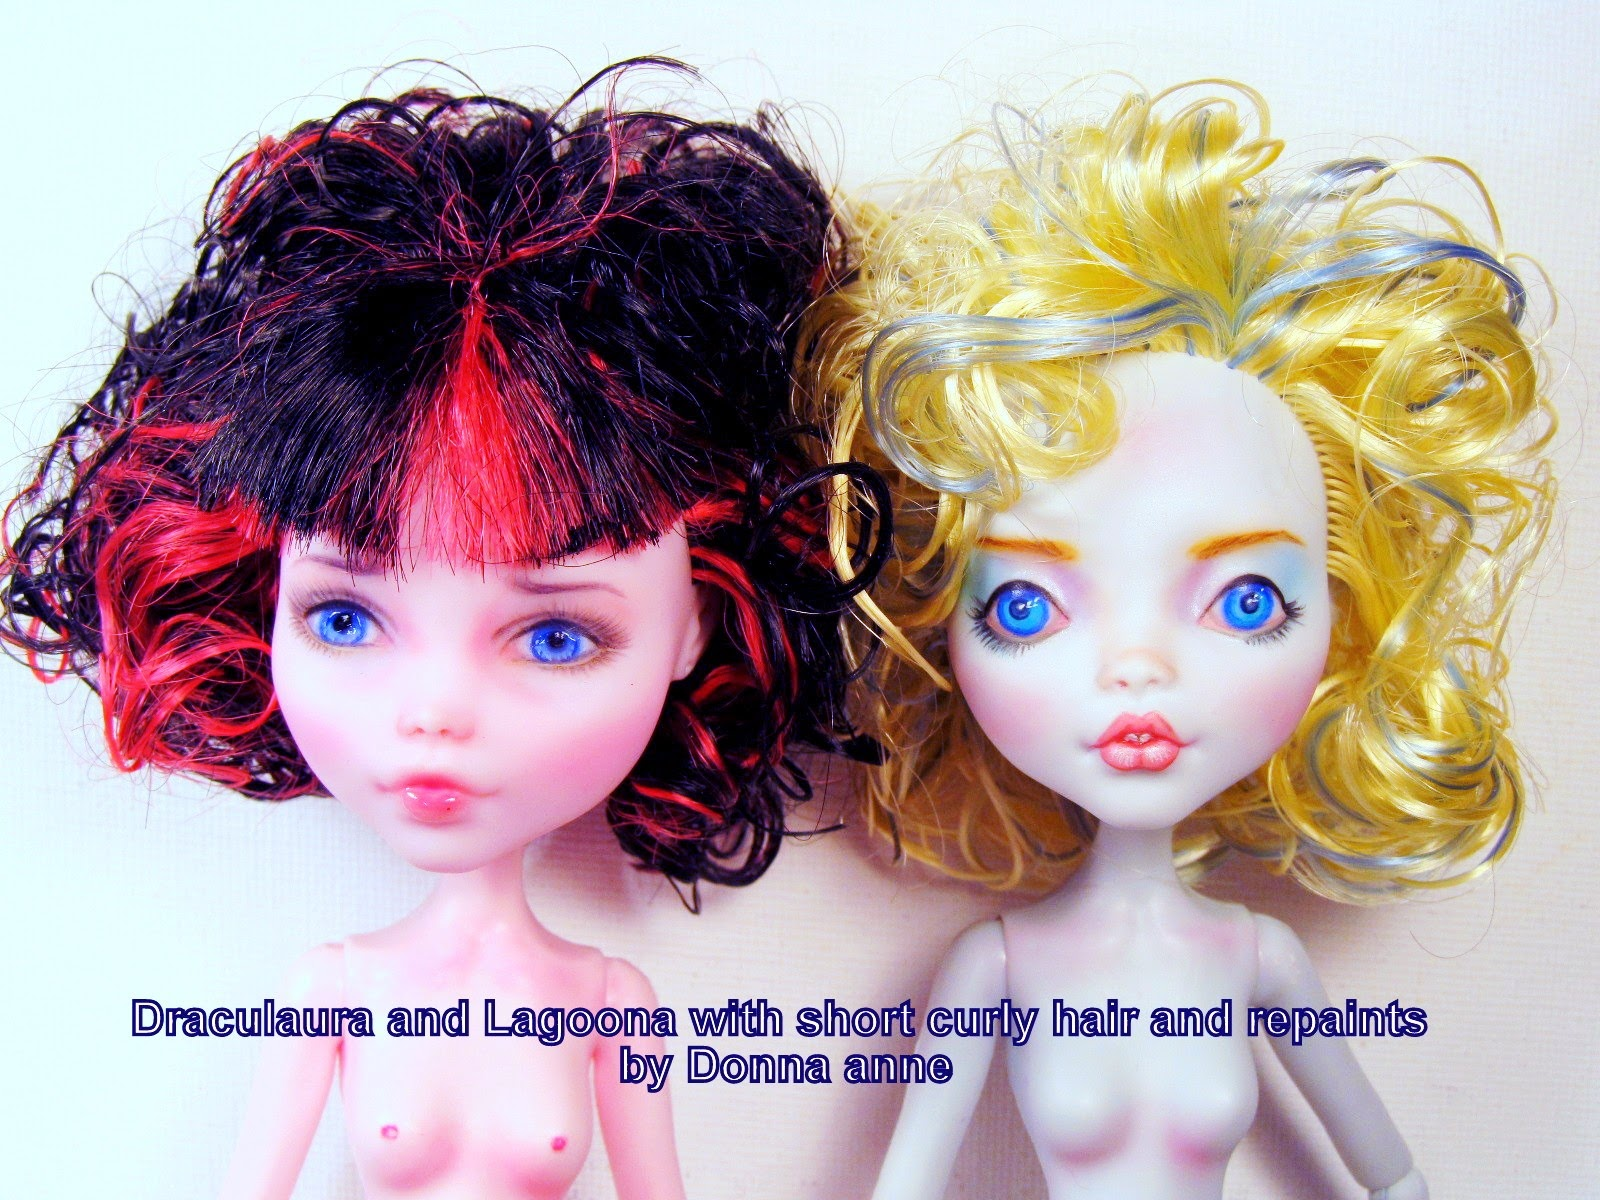 Draculaura and Lagoona repaint and boil perm